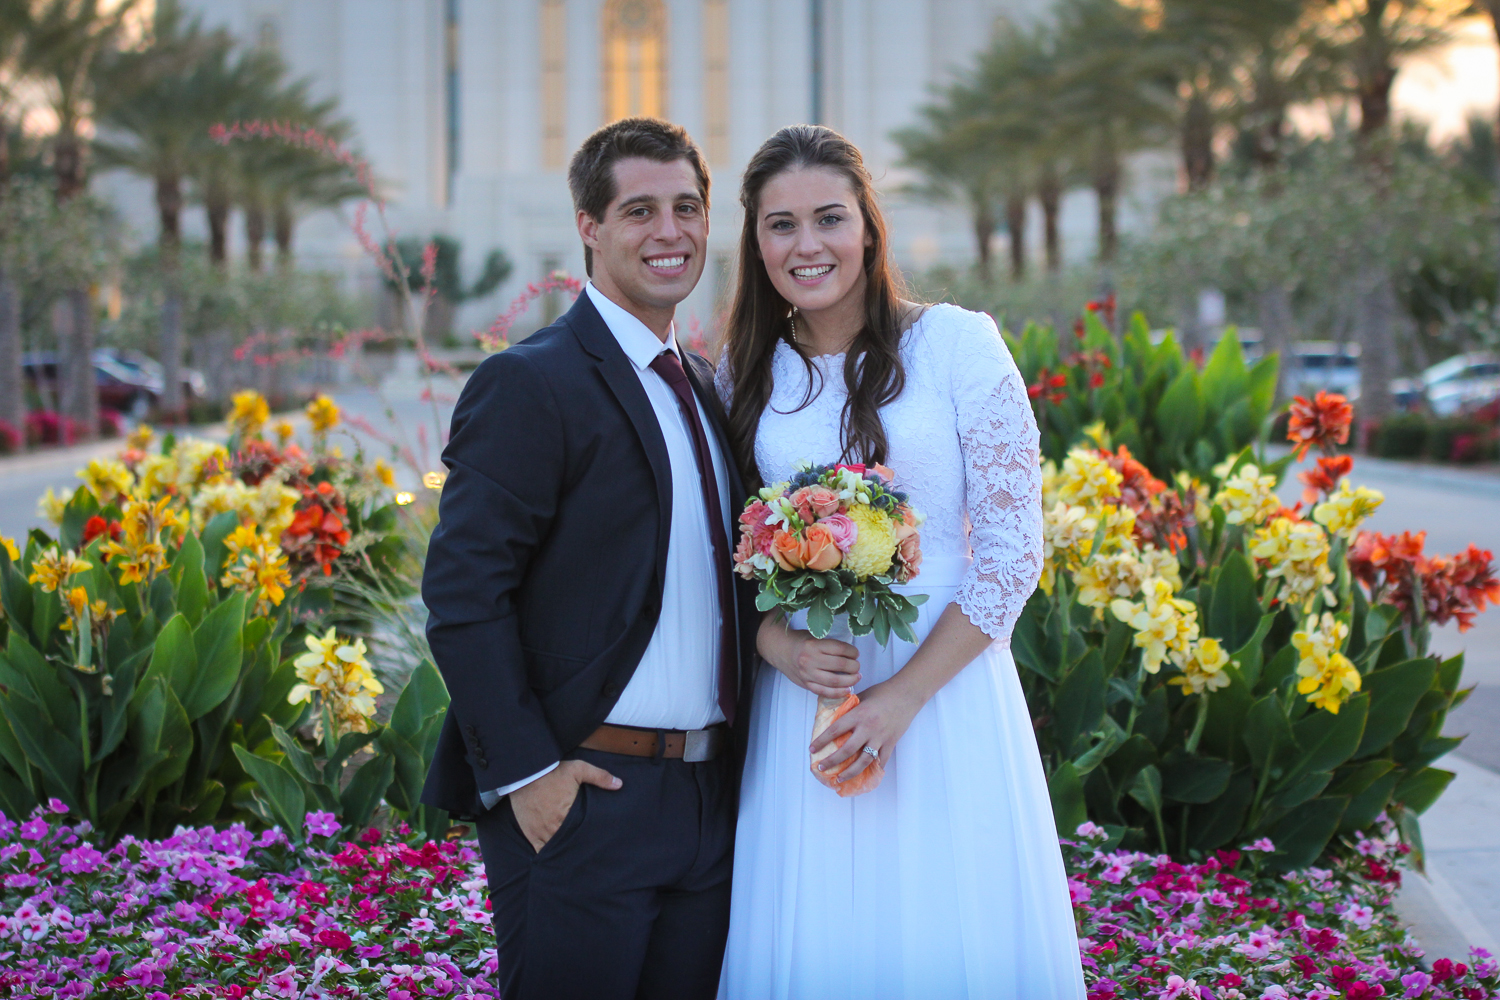 gilbert temple wedding photo-1-21